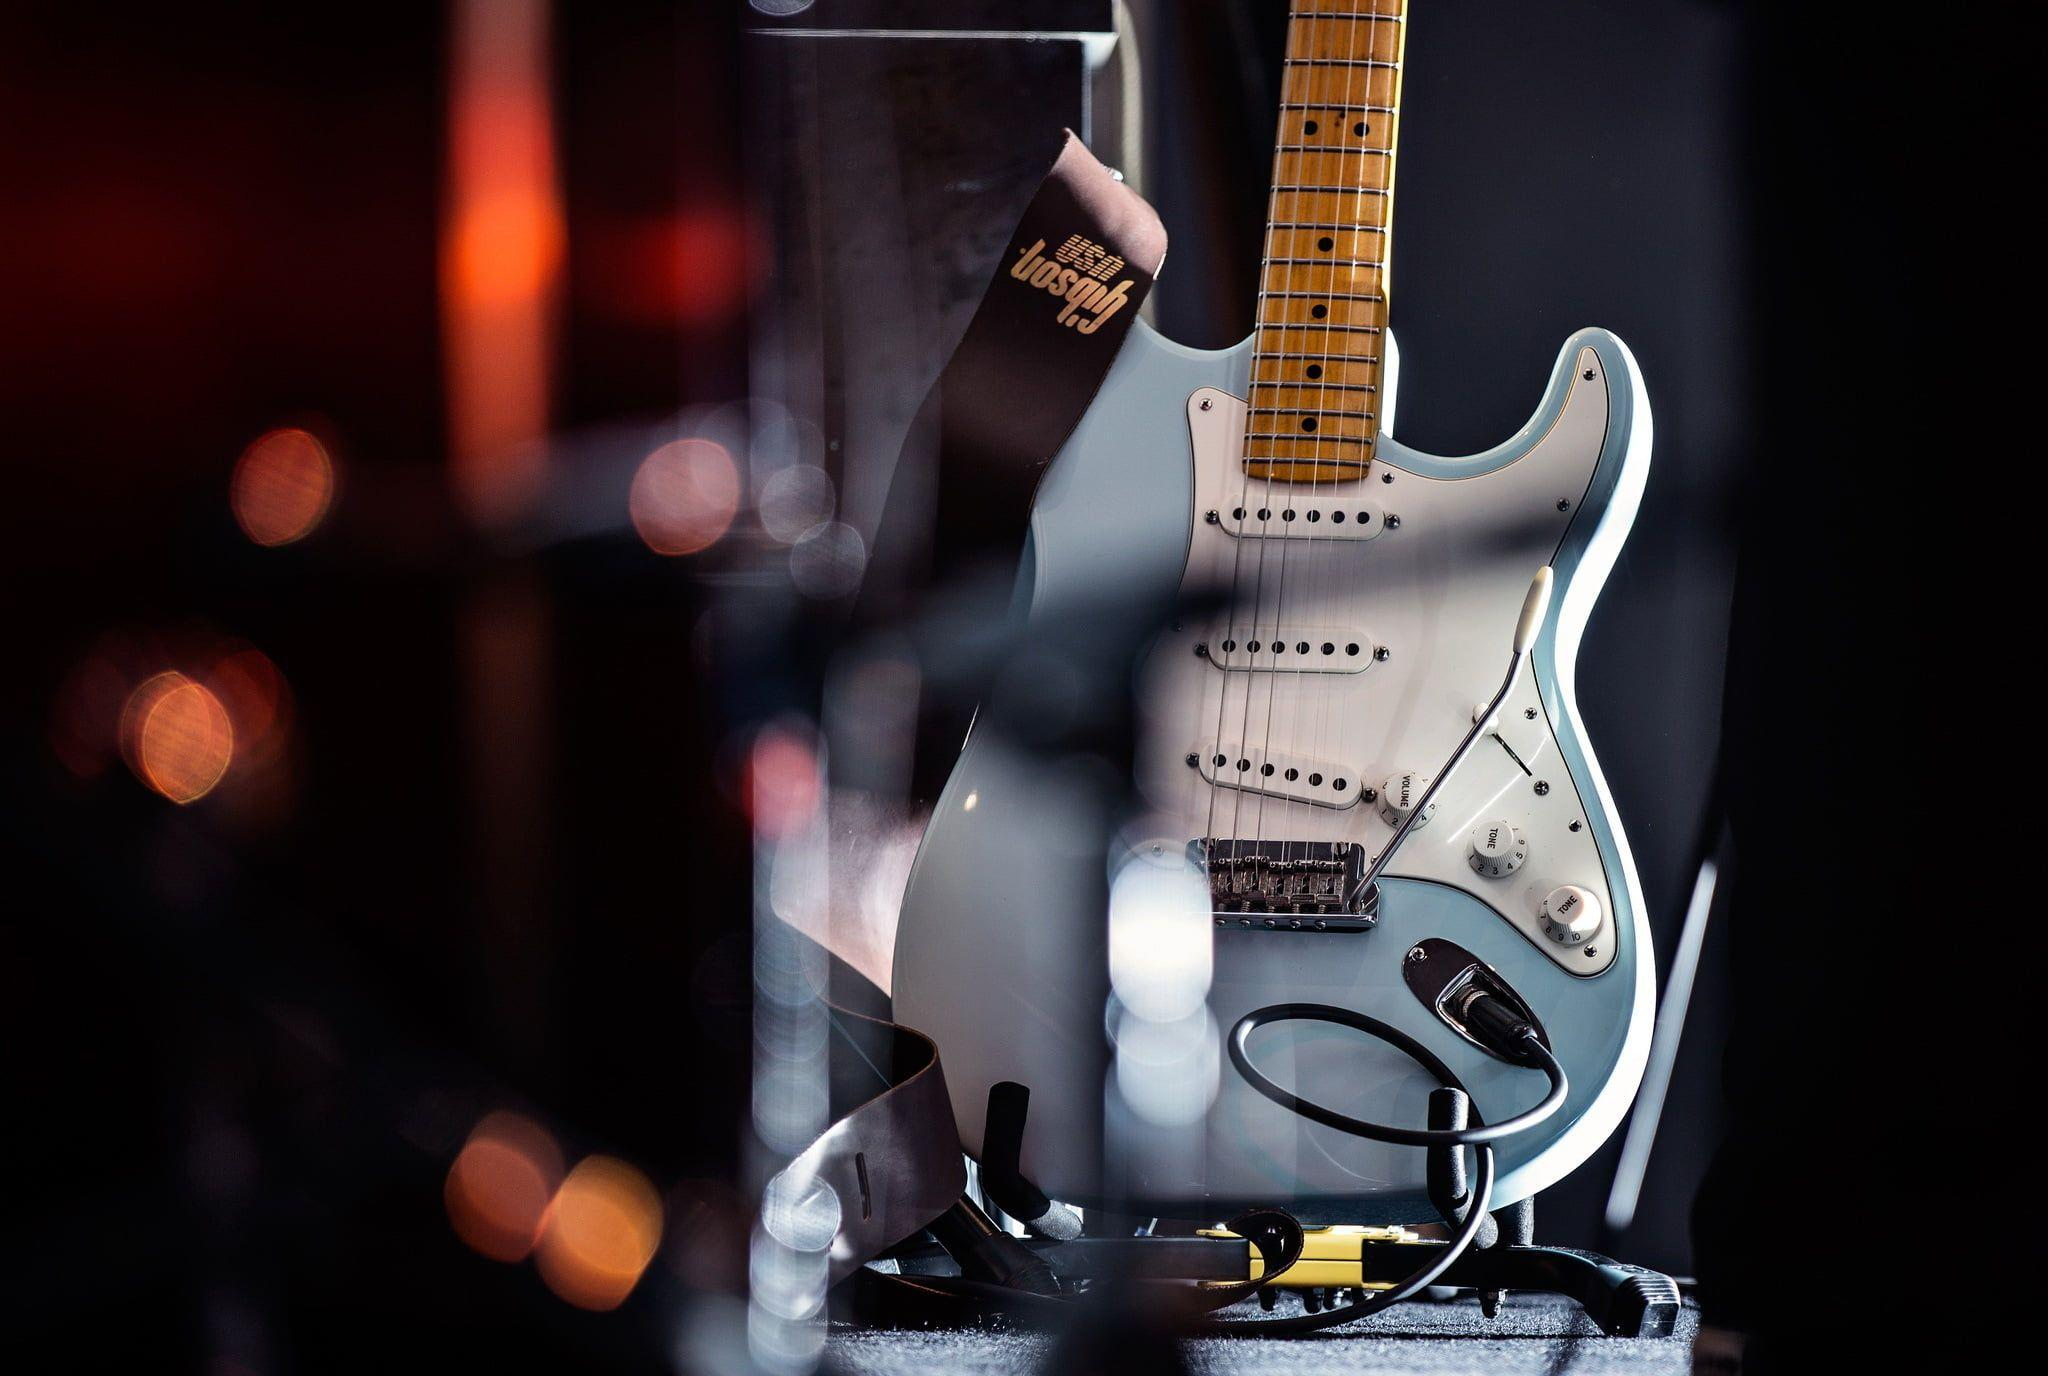 Blue stratocaster electric guitar HD wallpaper | Wallpaper Flare